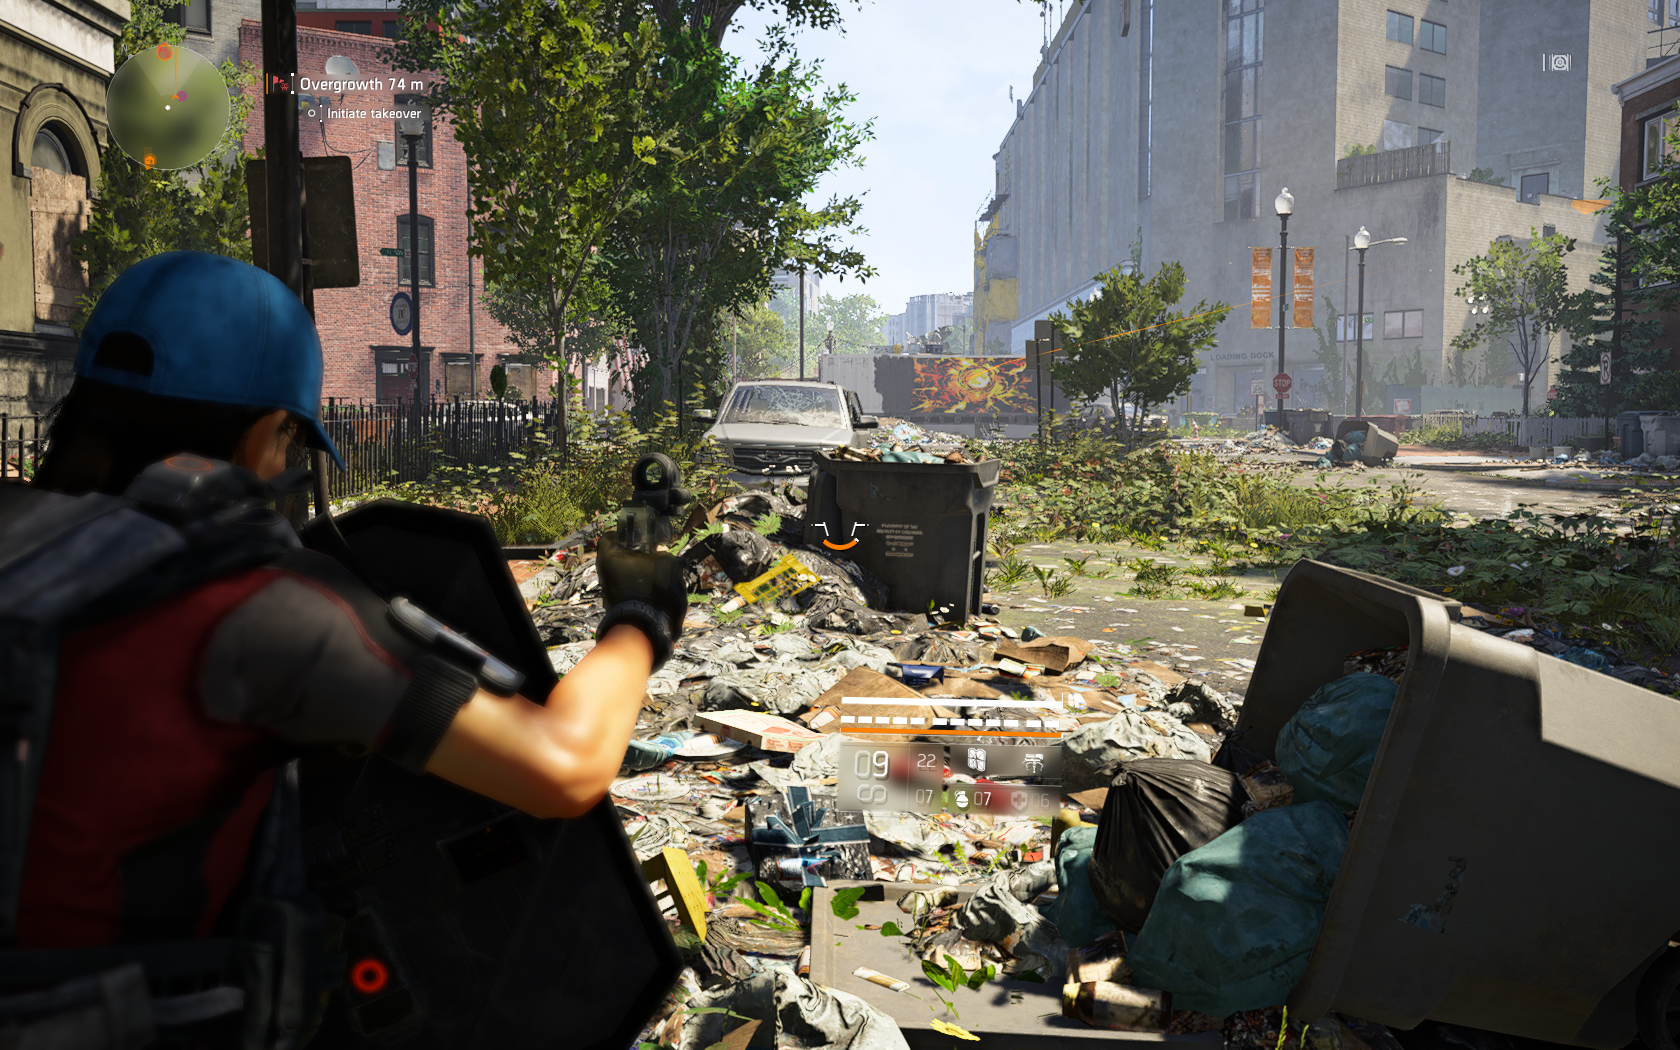 Tom Clancy's The Division 2 Screenshot 2019.03.22 - 11.23.55.14.png